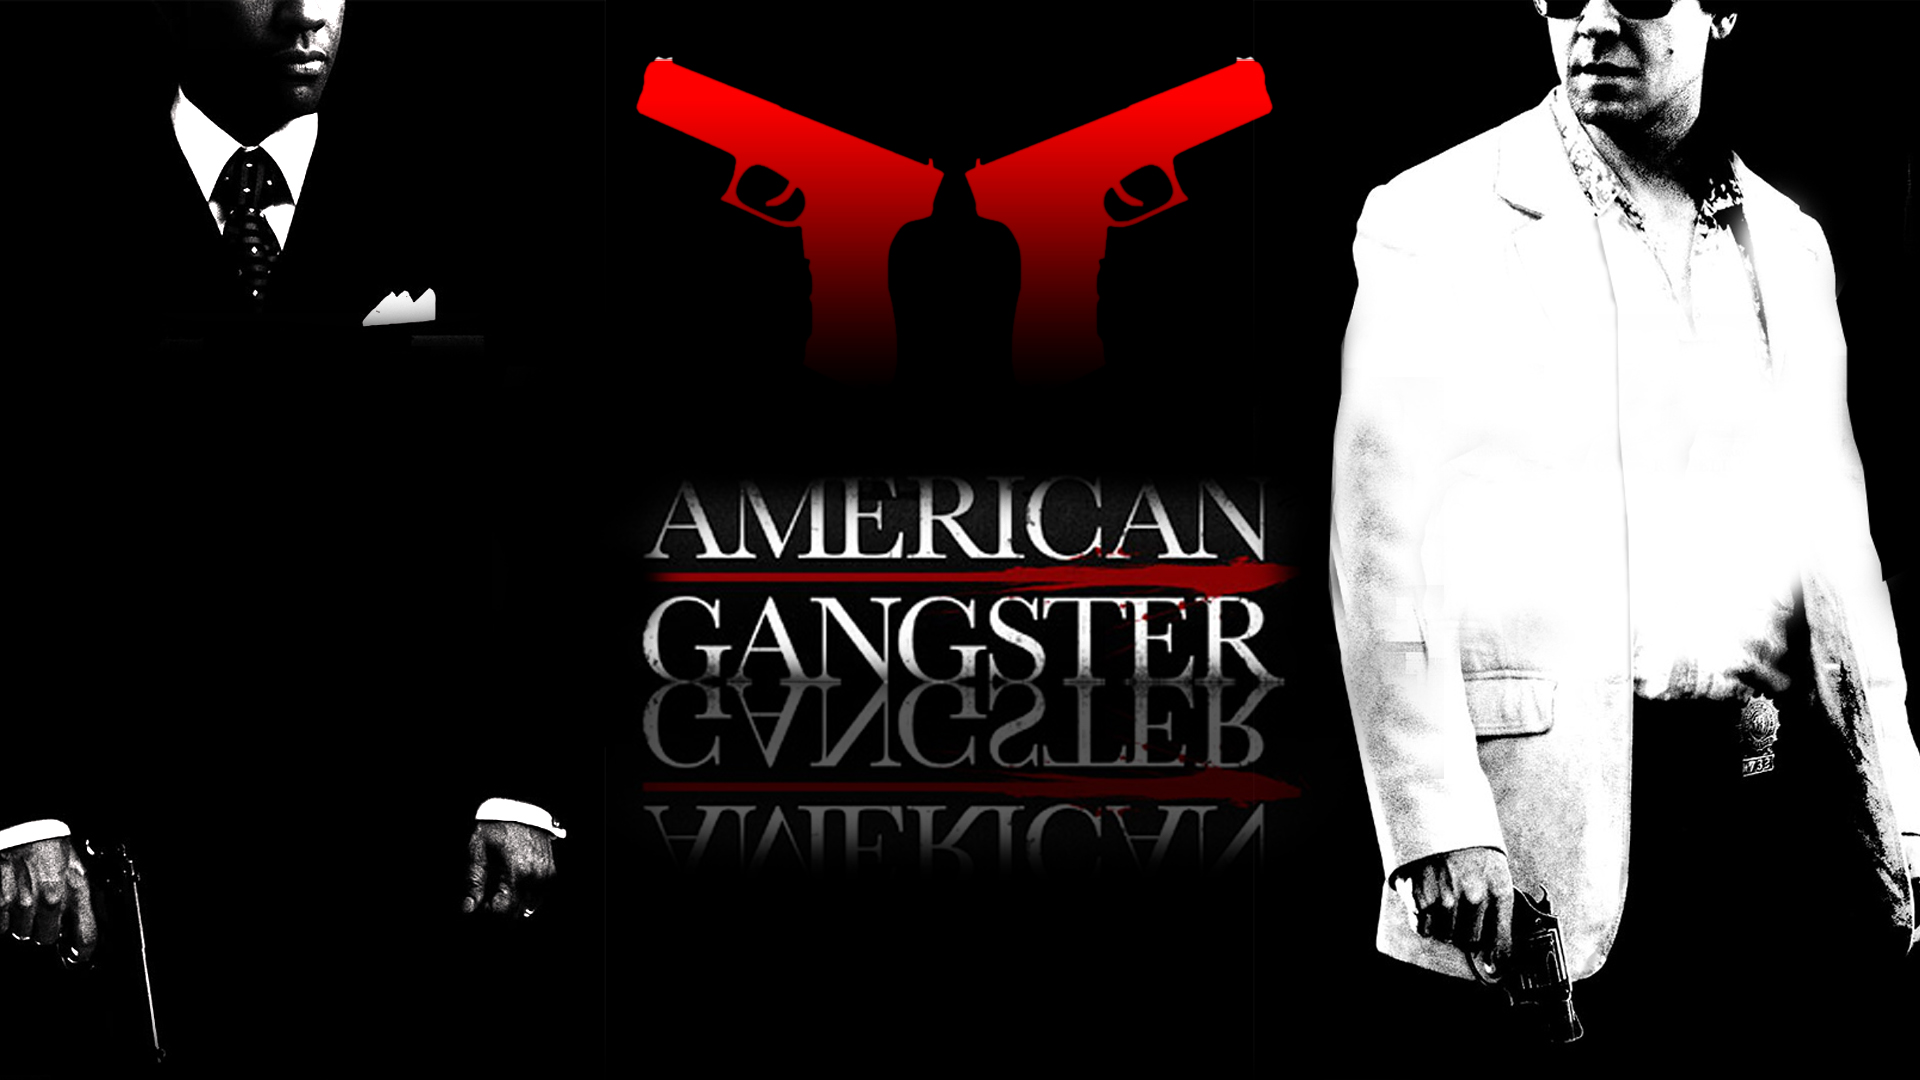 theme wallpaper backgrounds gangster american man2vir media 1920x1080